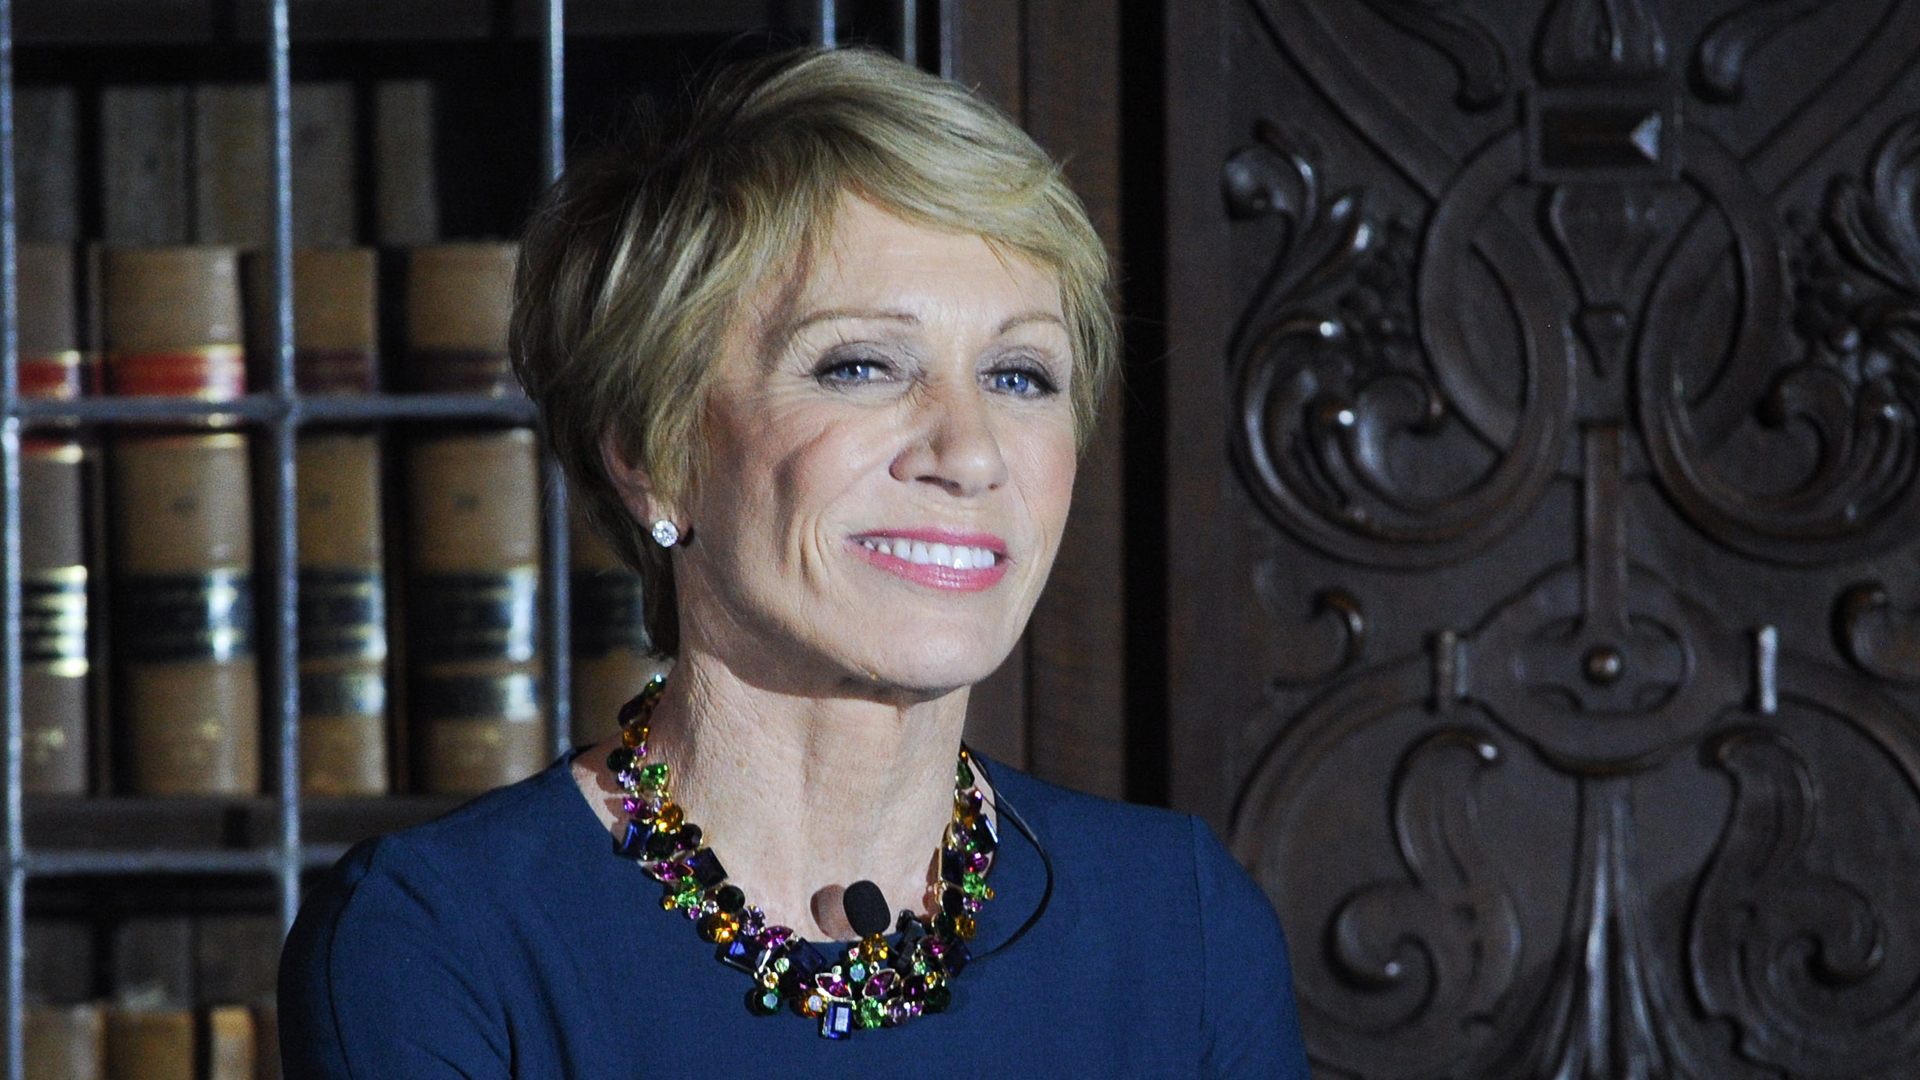 """Shark Tank"" judge Barbara Corcoran, seen here on April 5, 2018 in Toronto, Canada, is ""thrilled"" about getting back nearly $400,000 after it was stolen in an elaborate email scam. (GP Images/Getty Images)"